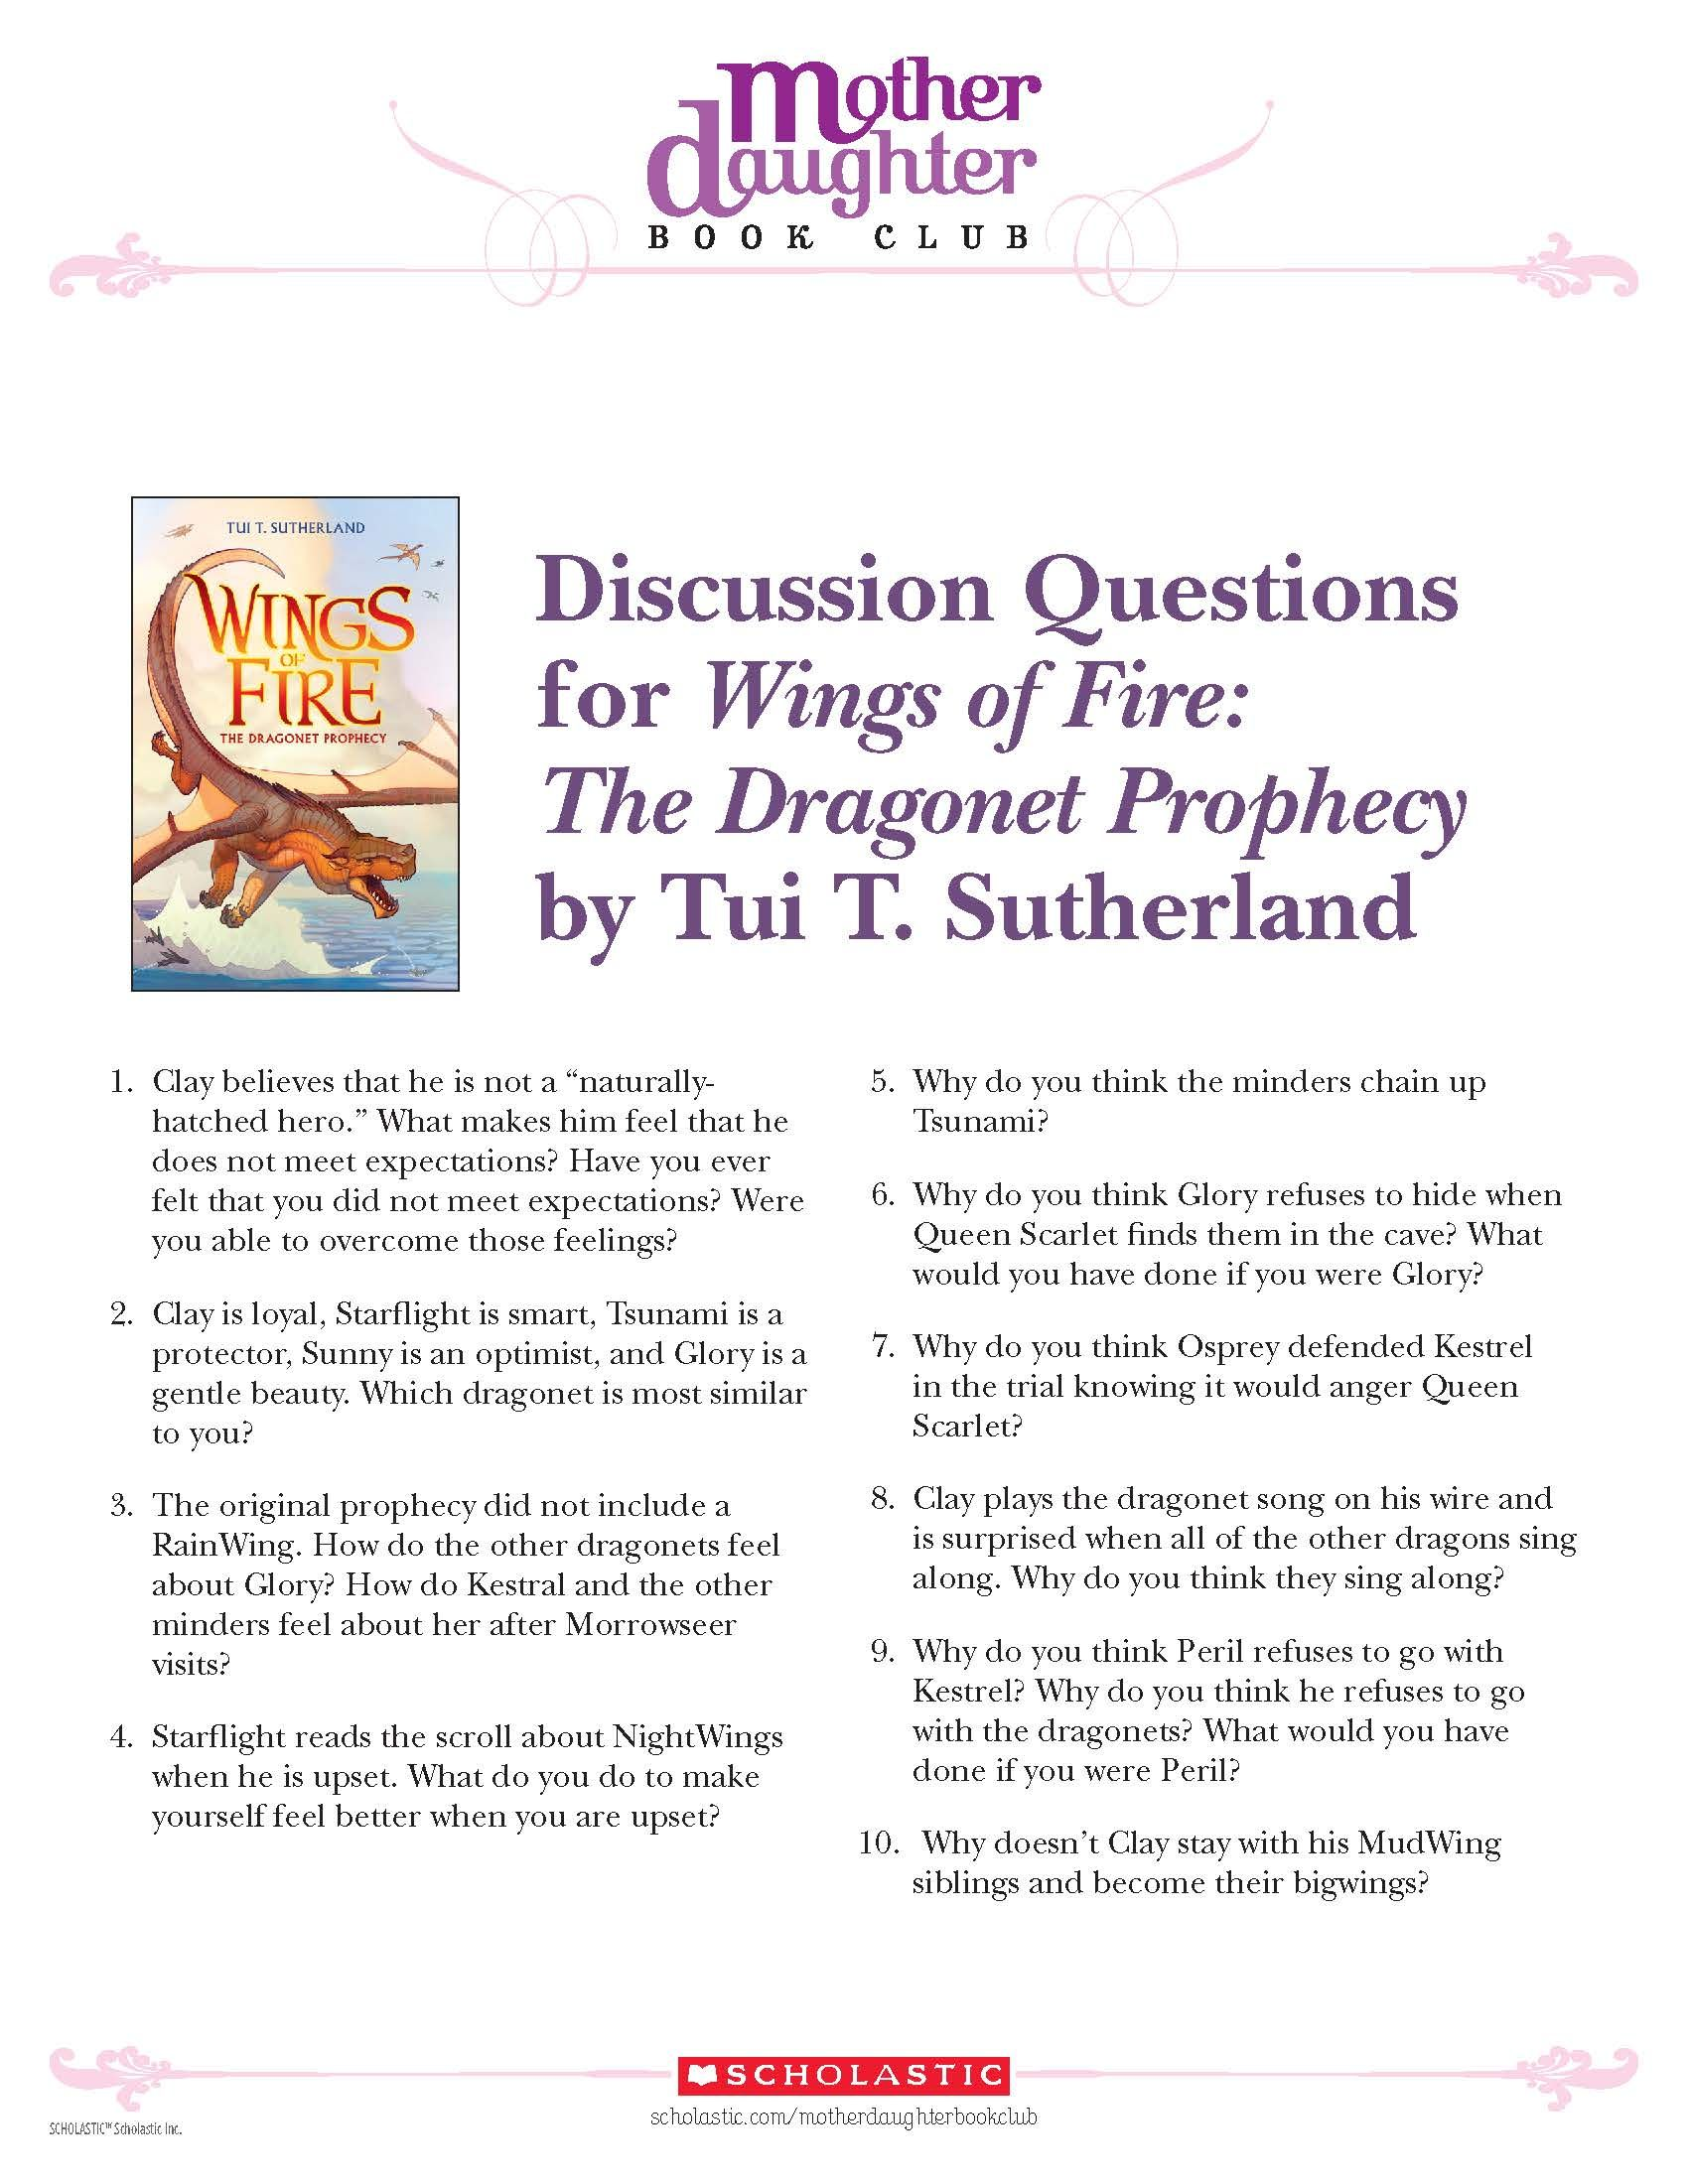 Discussion Questions for Wings of Fire: The Dragonet Prophecy by Tui